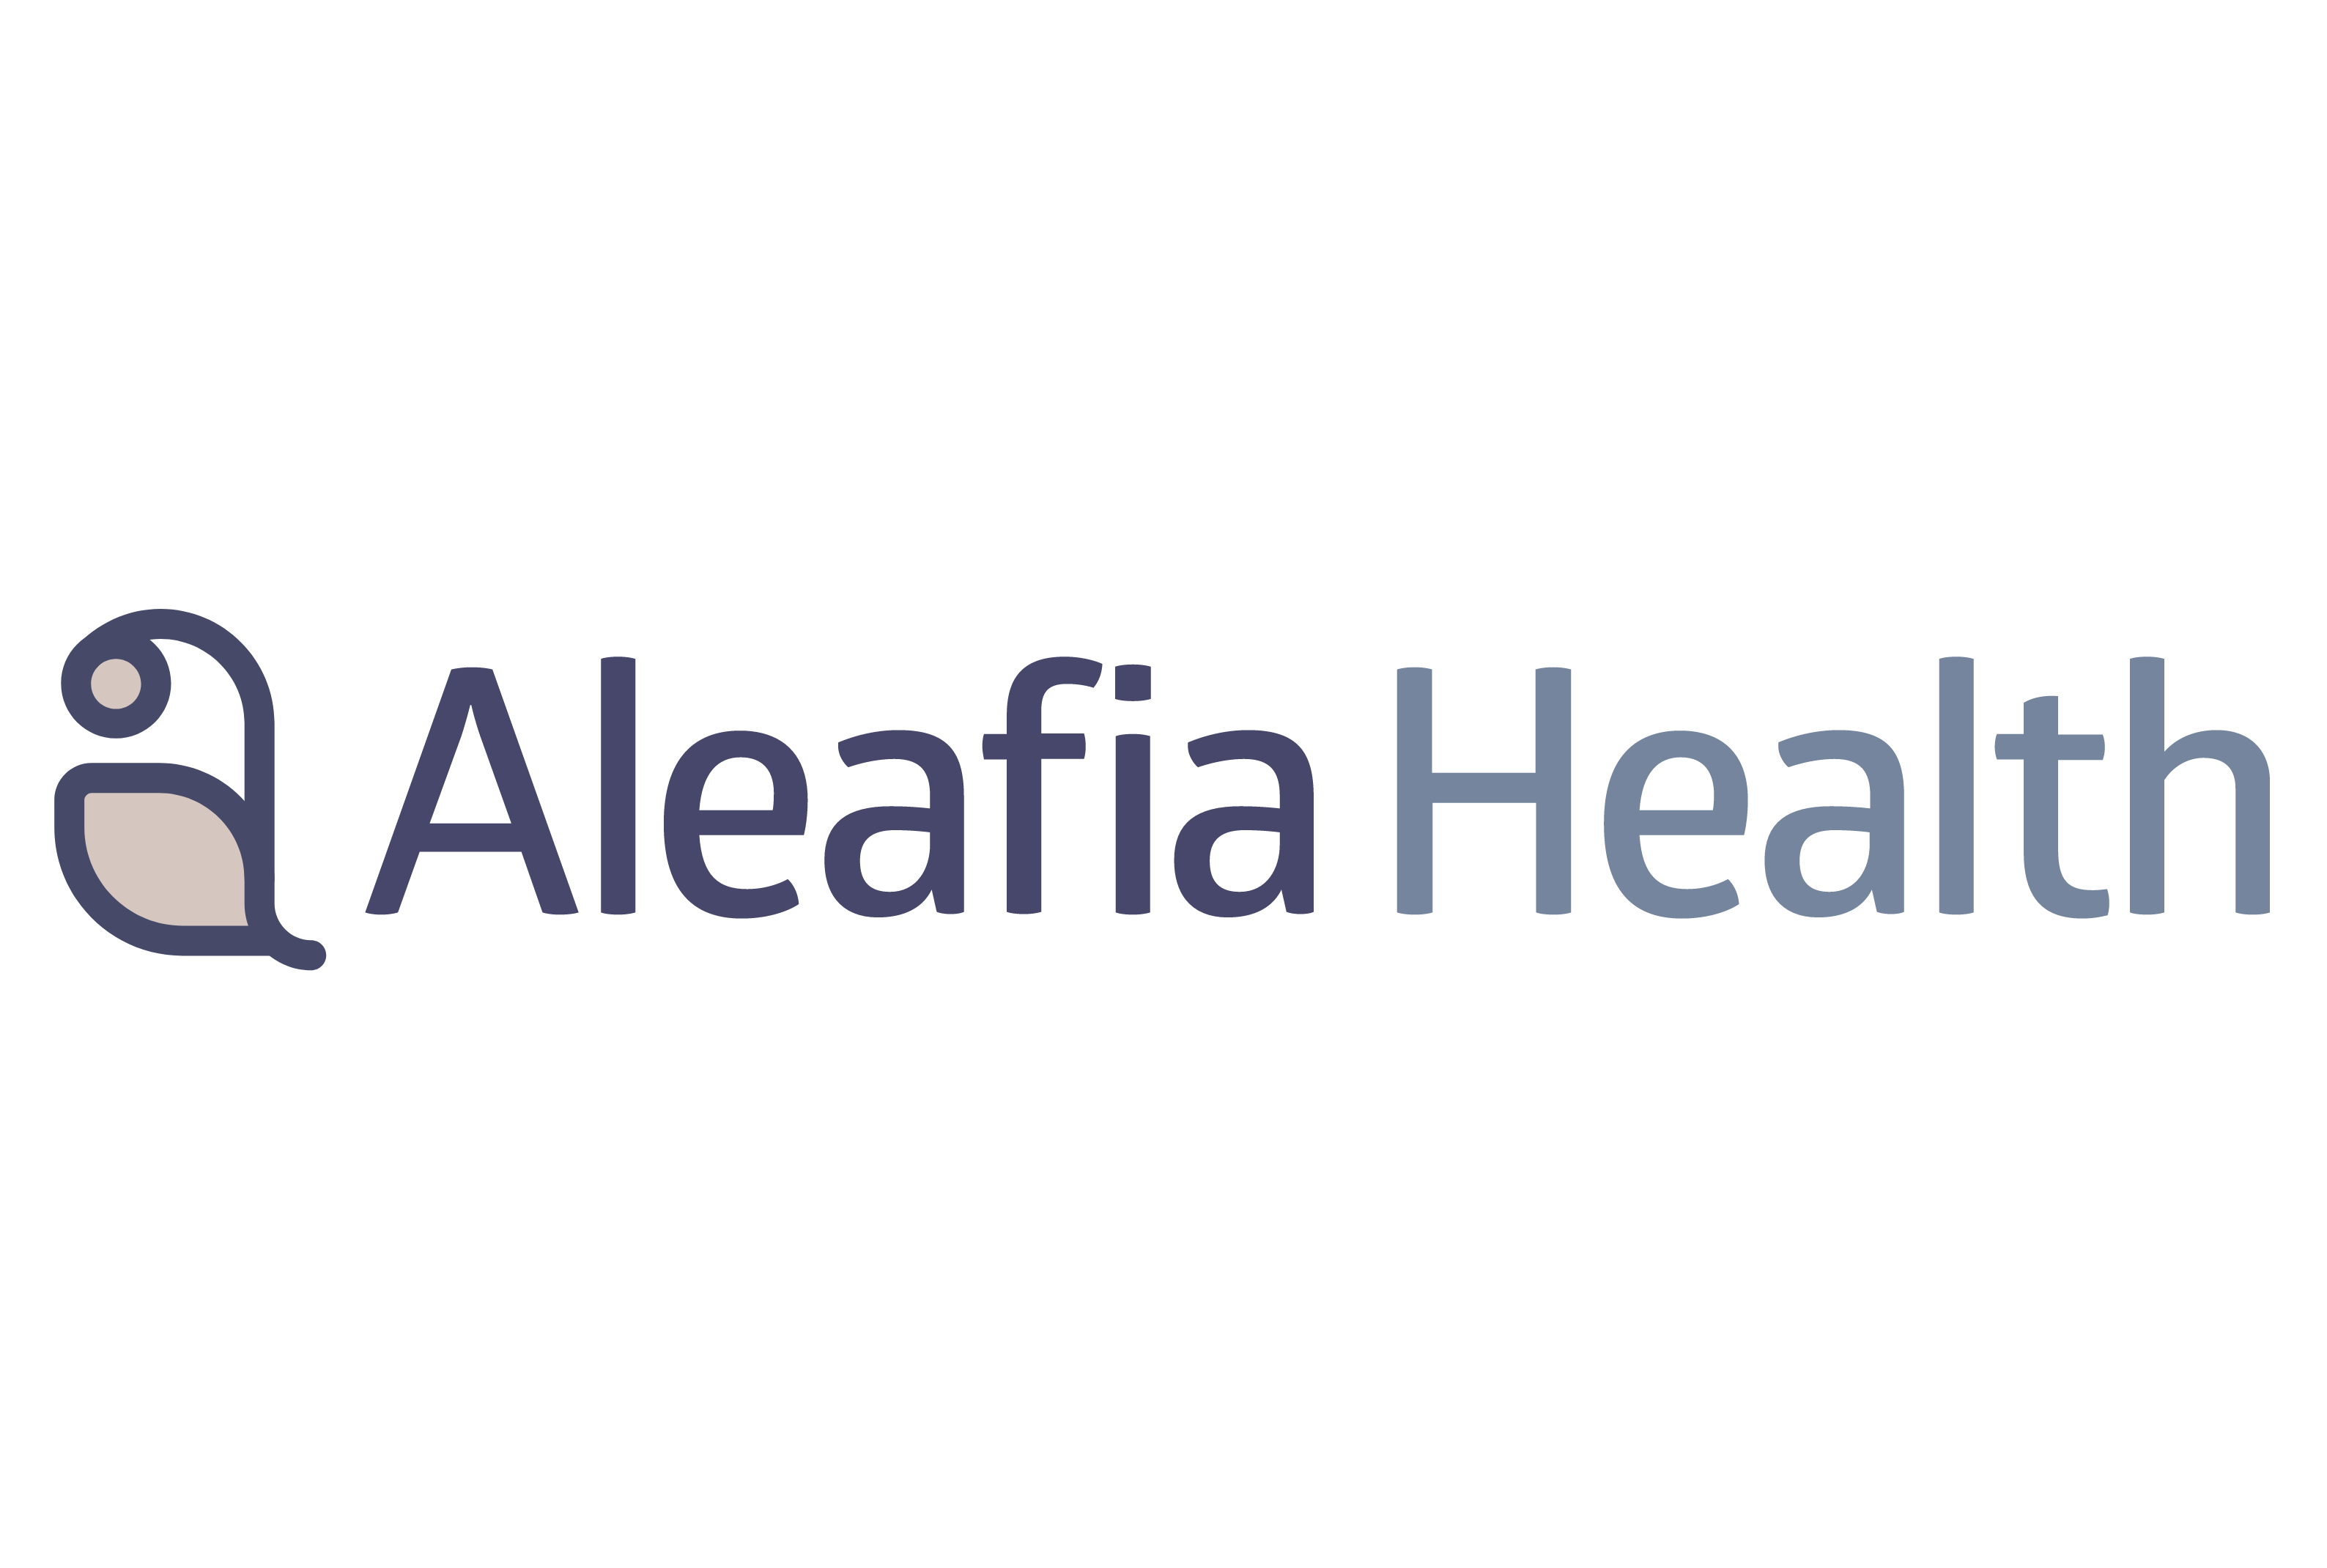 Aleafia Health to Announce 2019 Third Quarter Financial Results